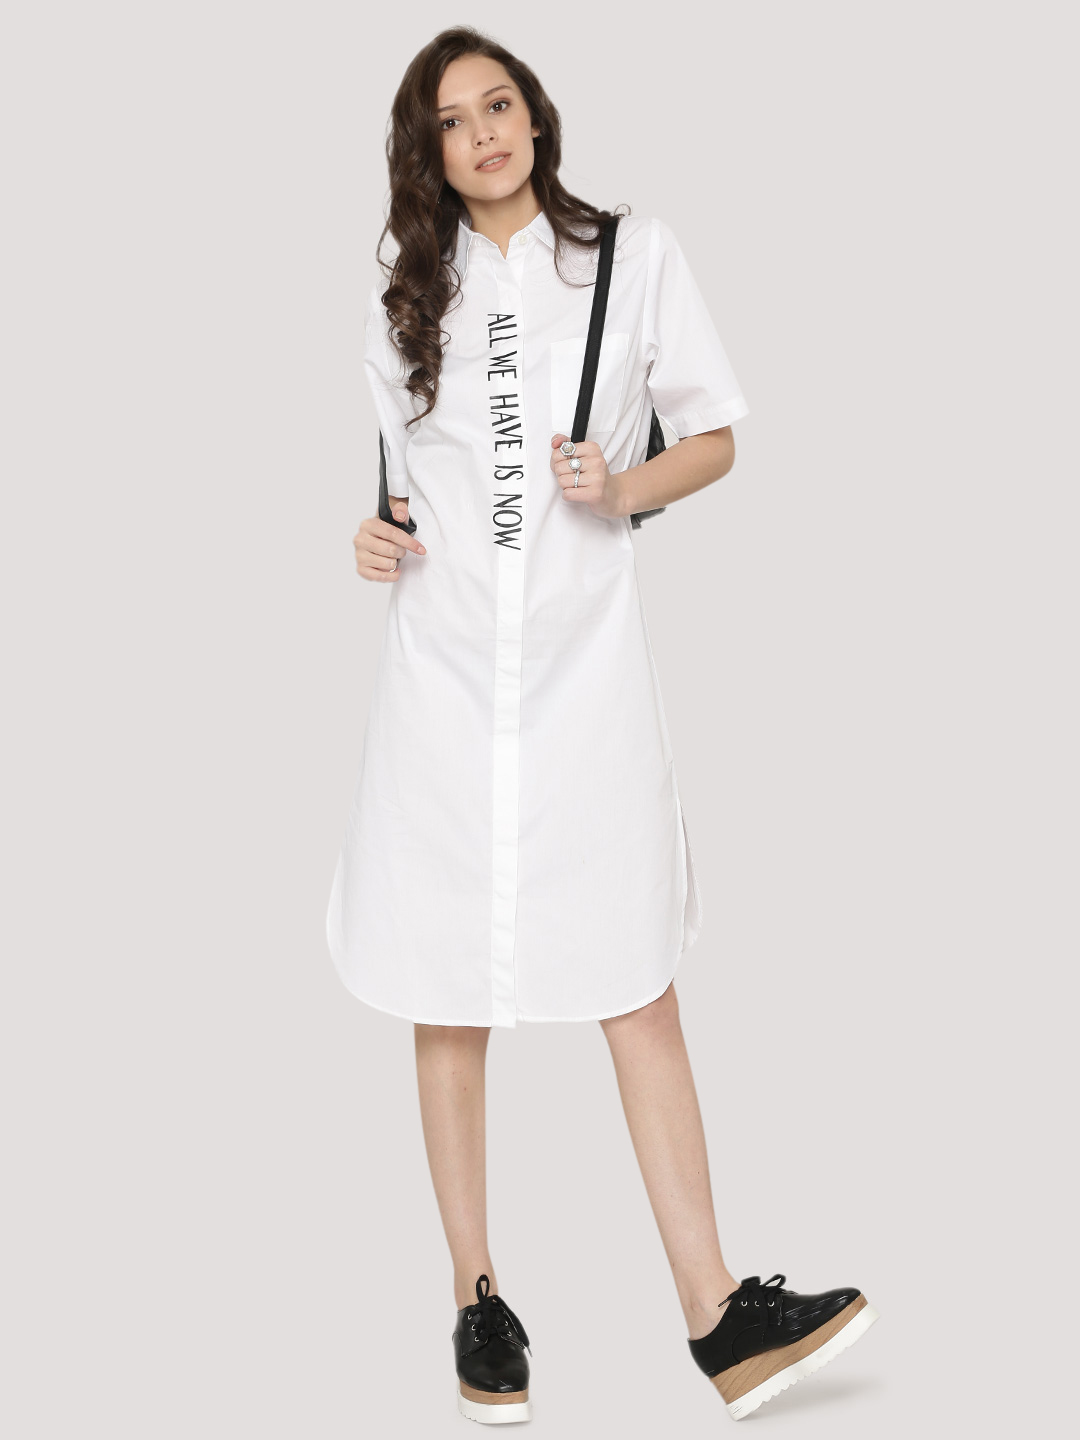 Spring Break White 'All We Have Is Now' Slogan Shirt Dress 1